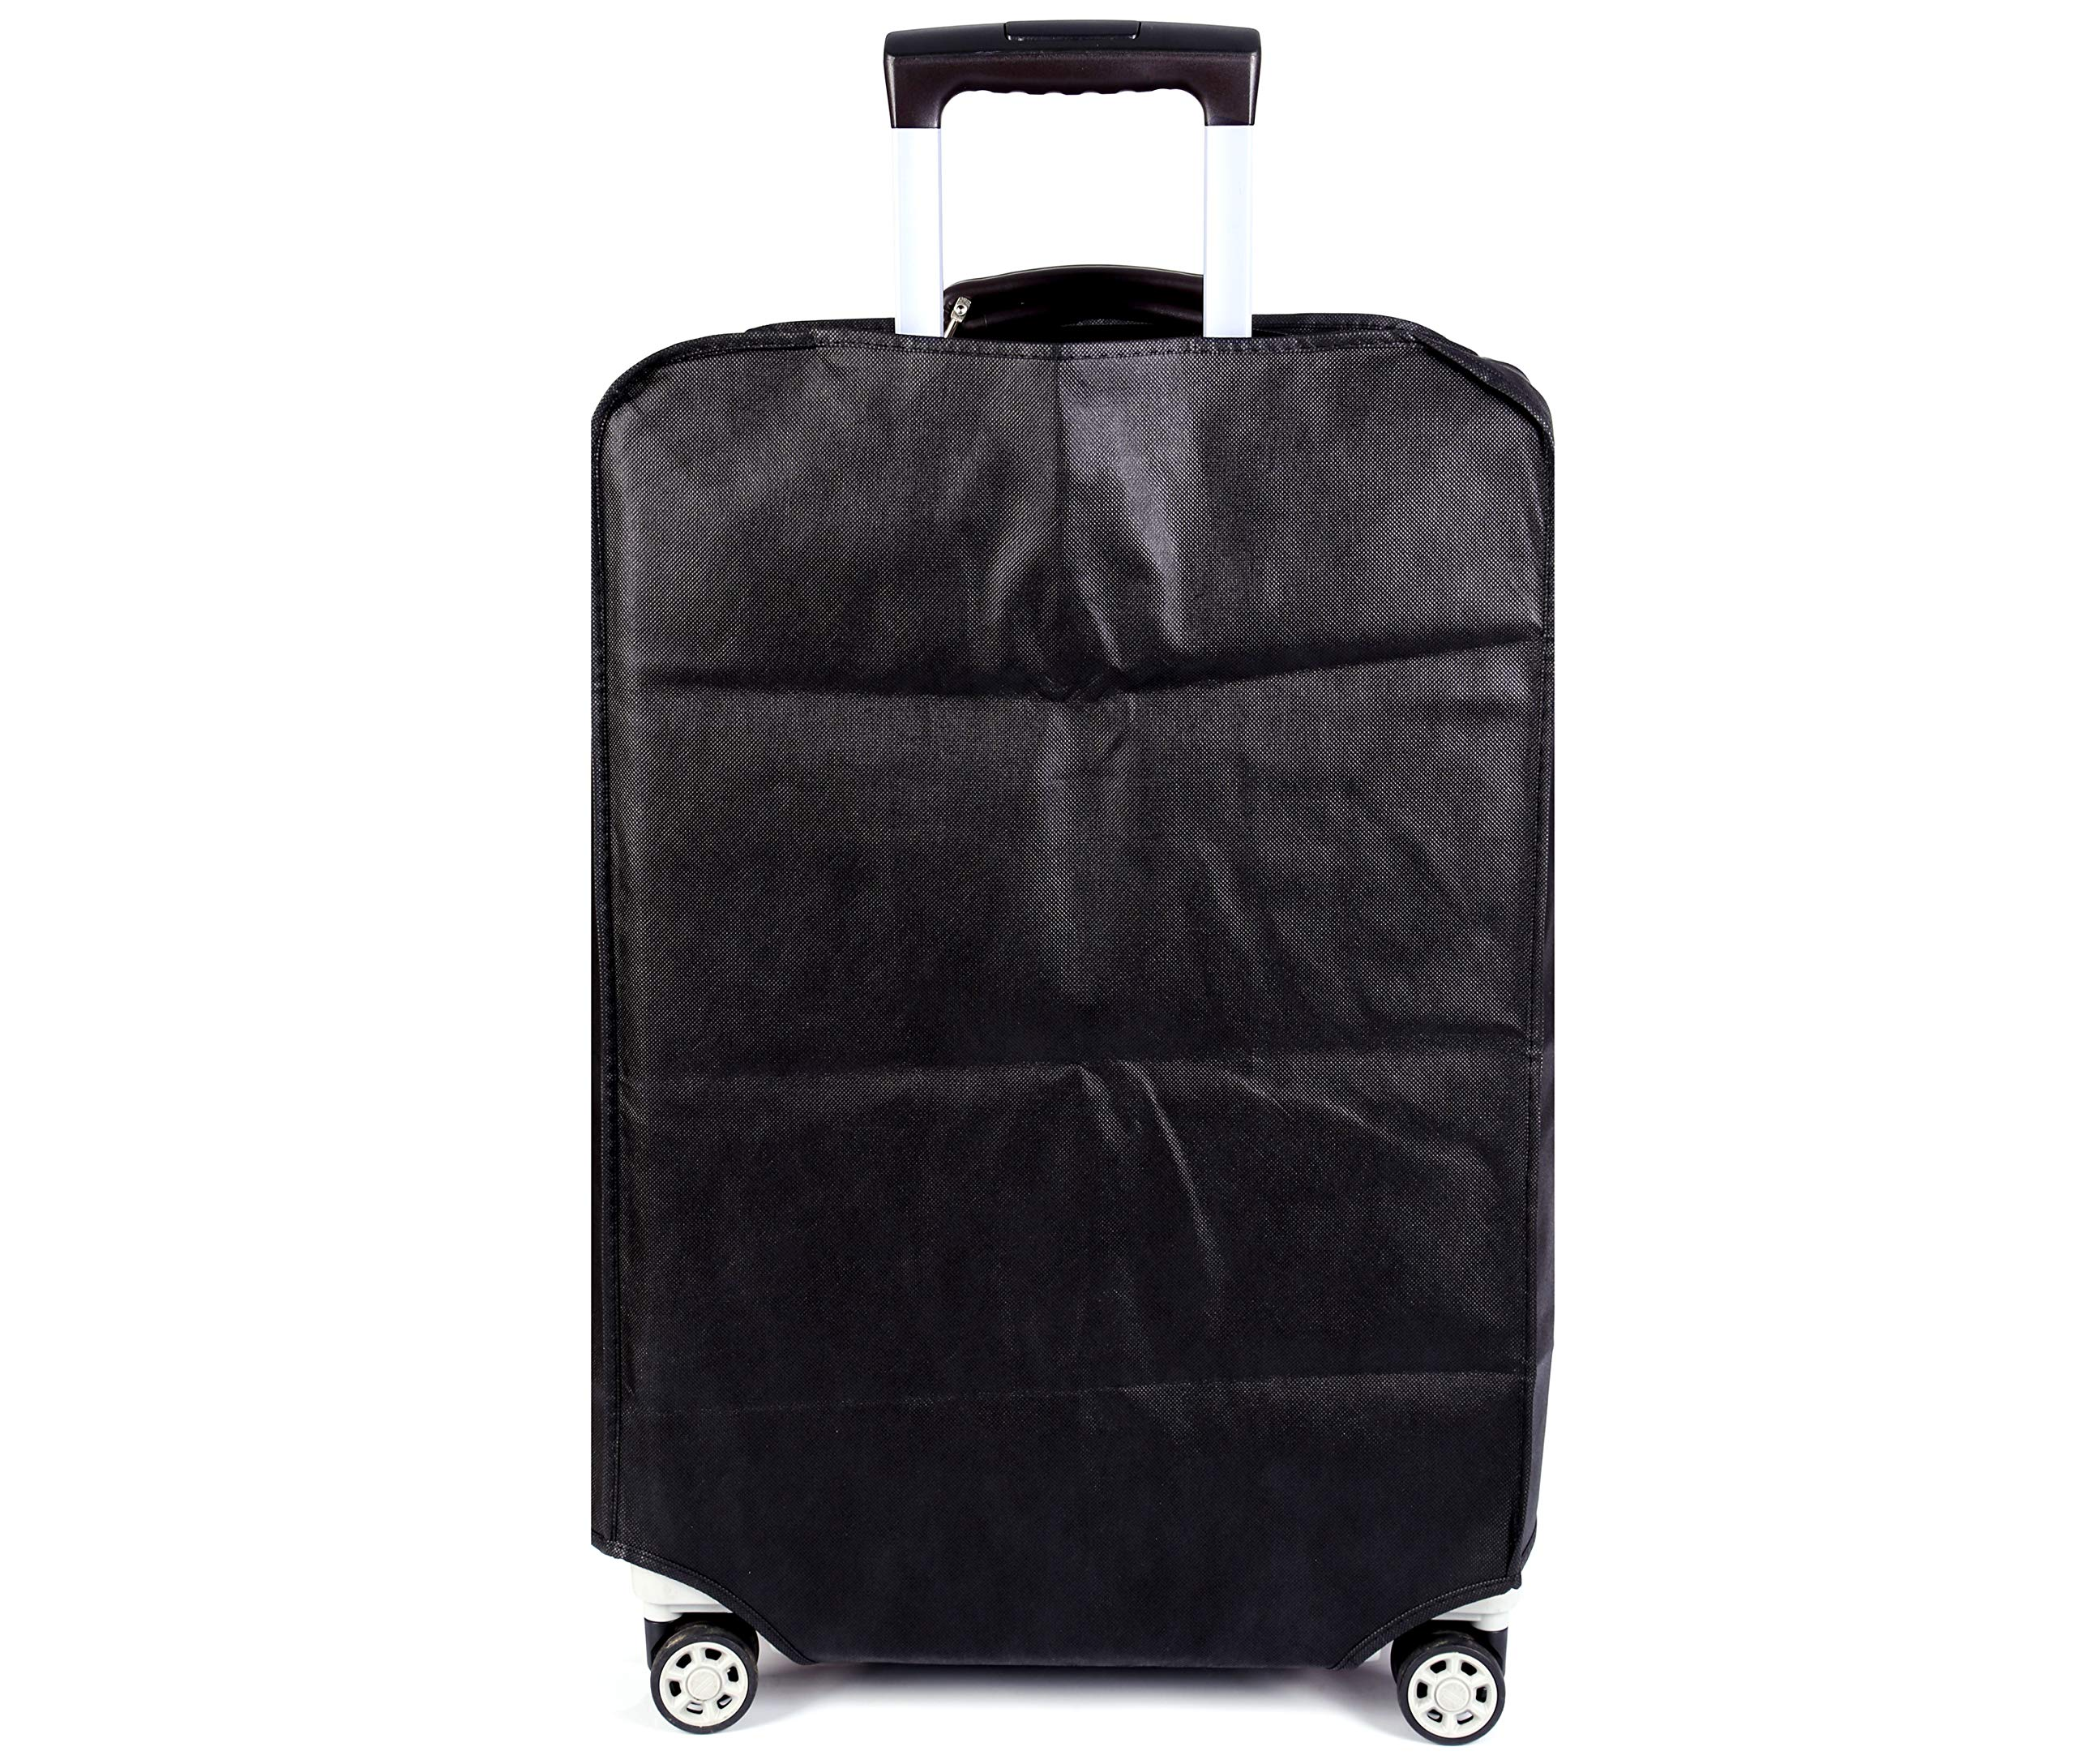 Travel Luggage Cover Luggage Protector Suitcase Cover Dust Cover,3 Colors,Fits 20 Inch,Black by CXGIAE (Image #1)